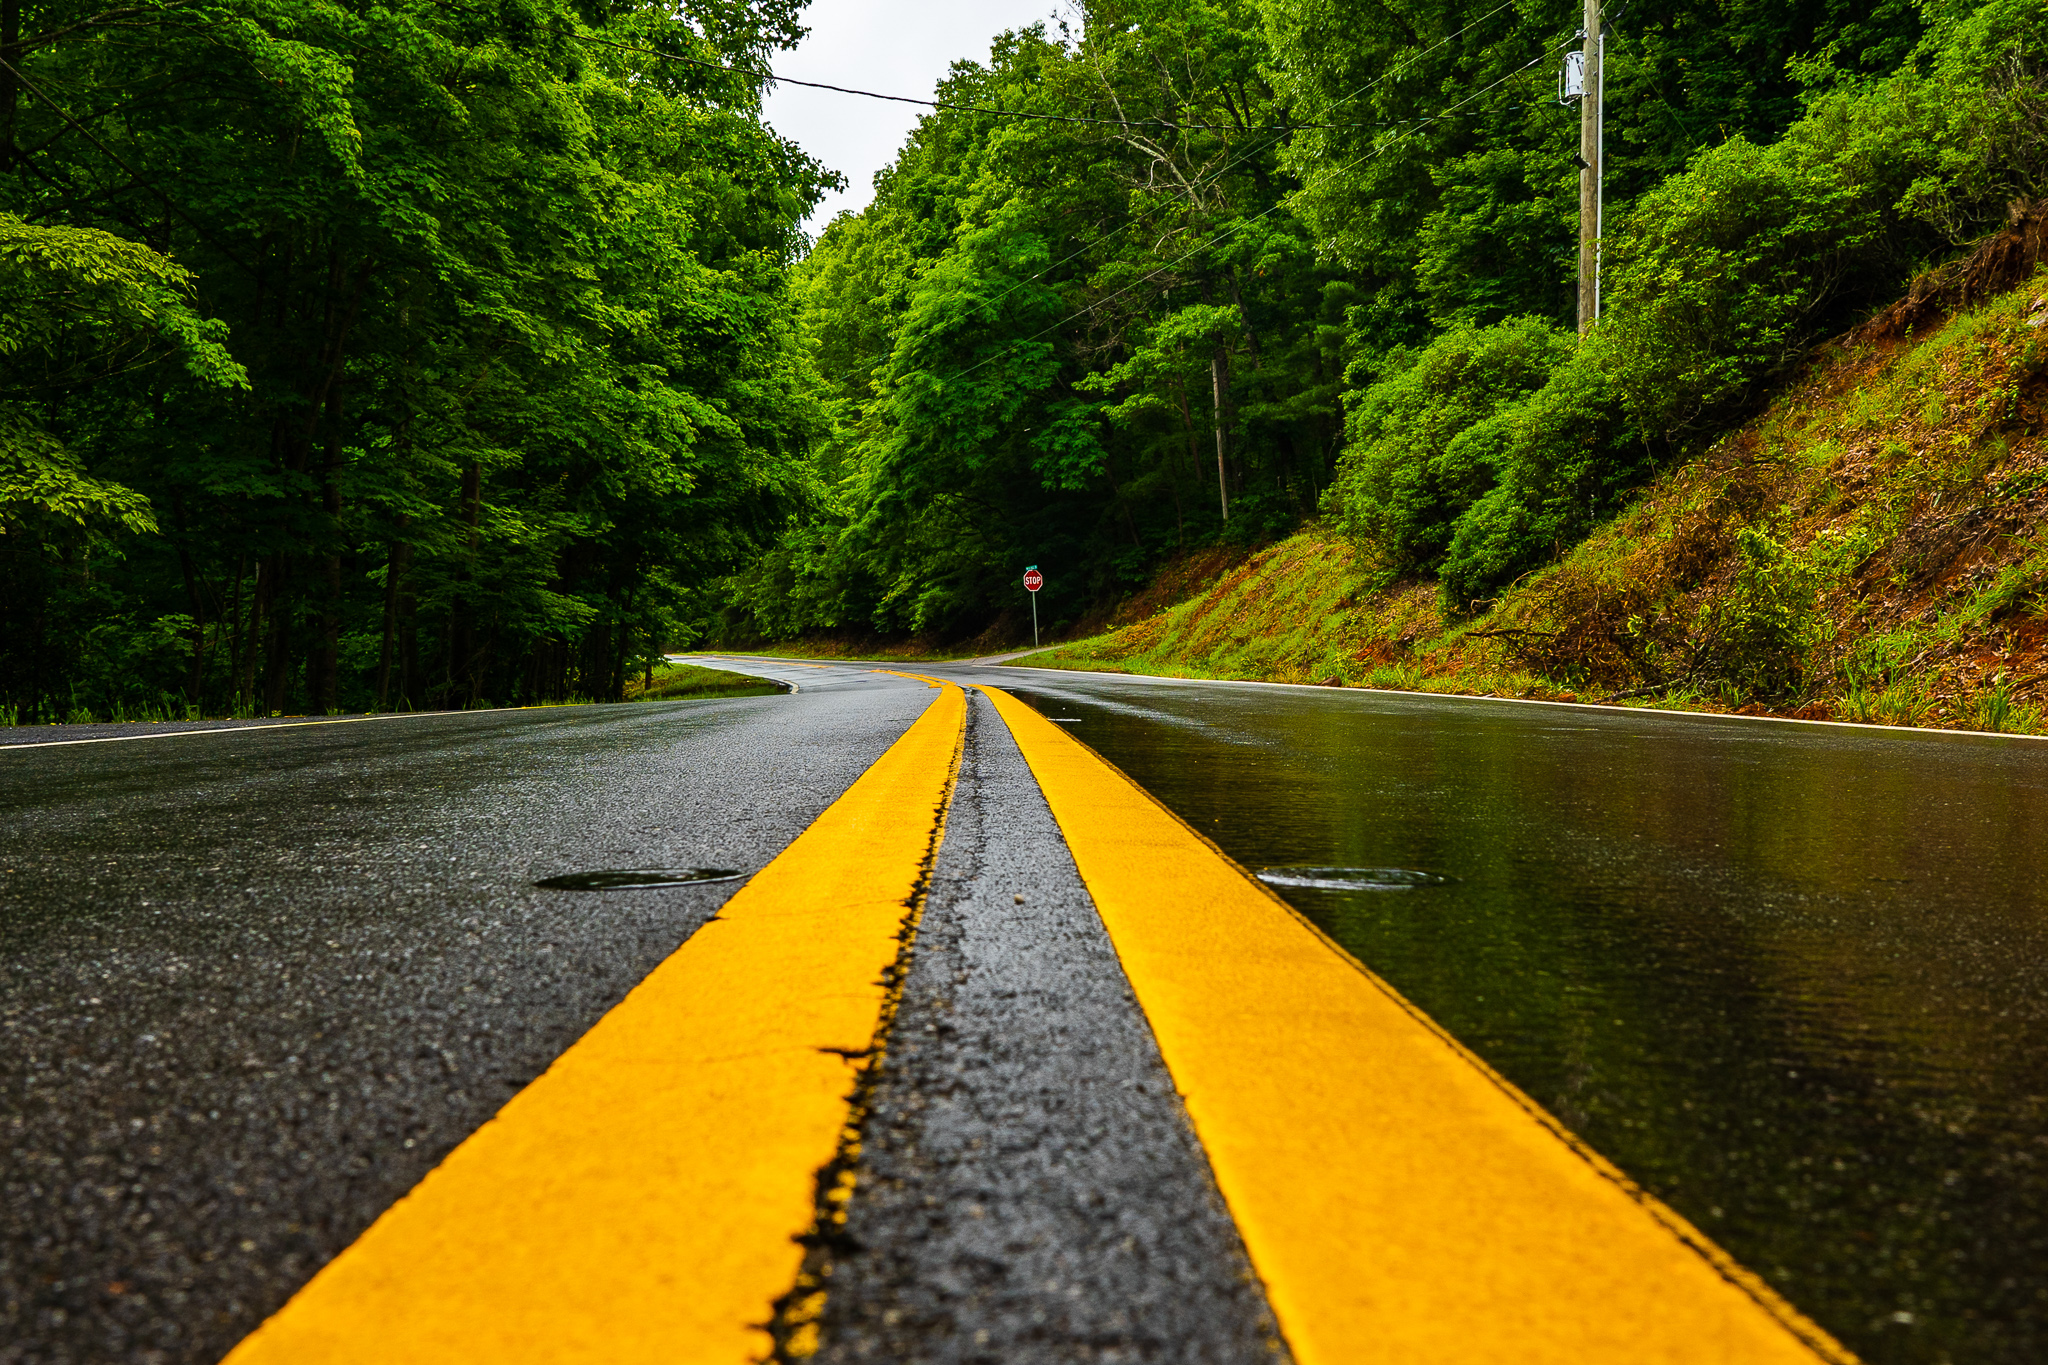 A winding road on a wet day in Georgia.